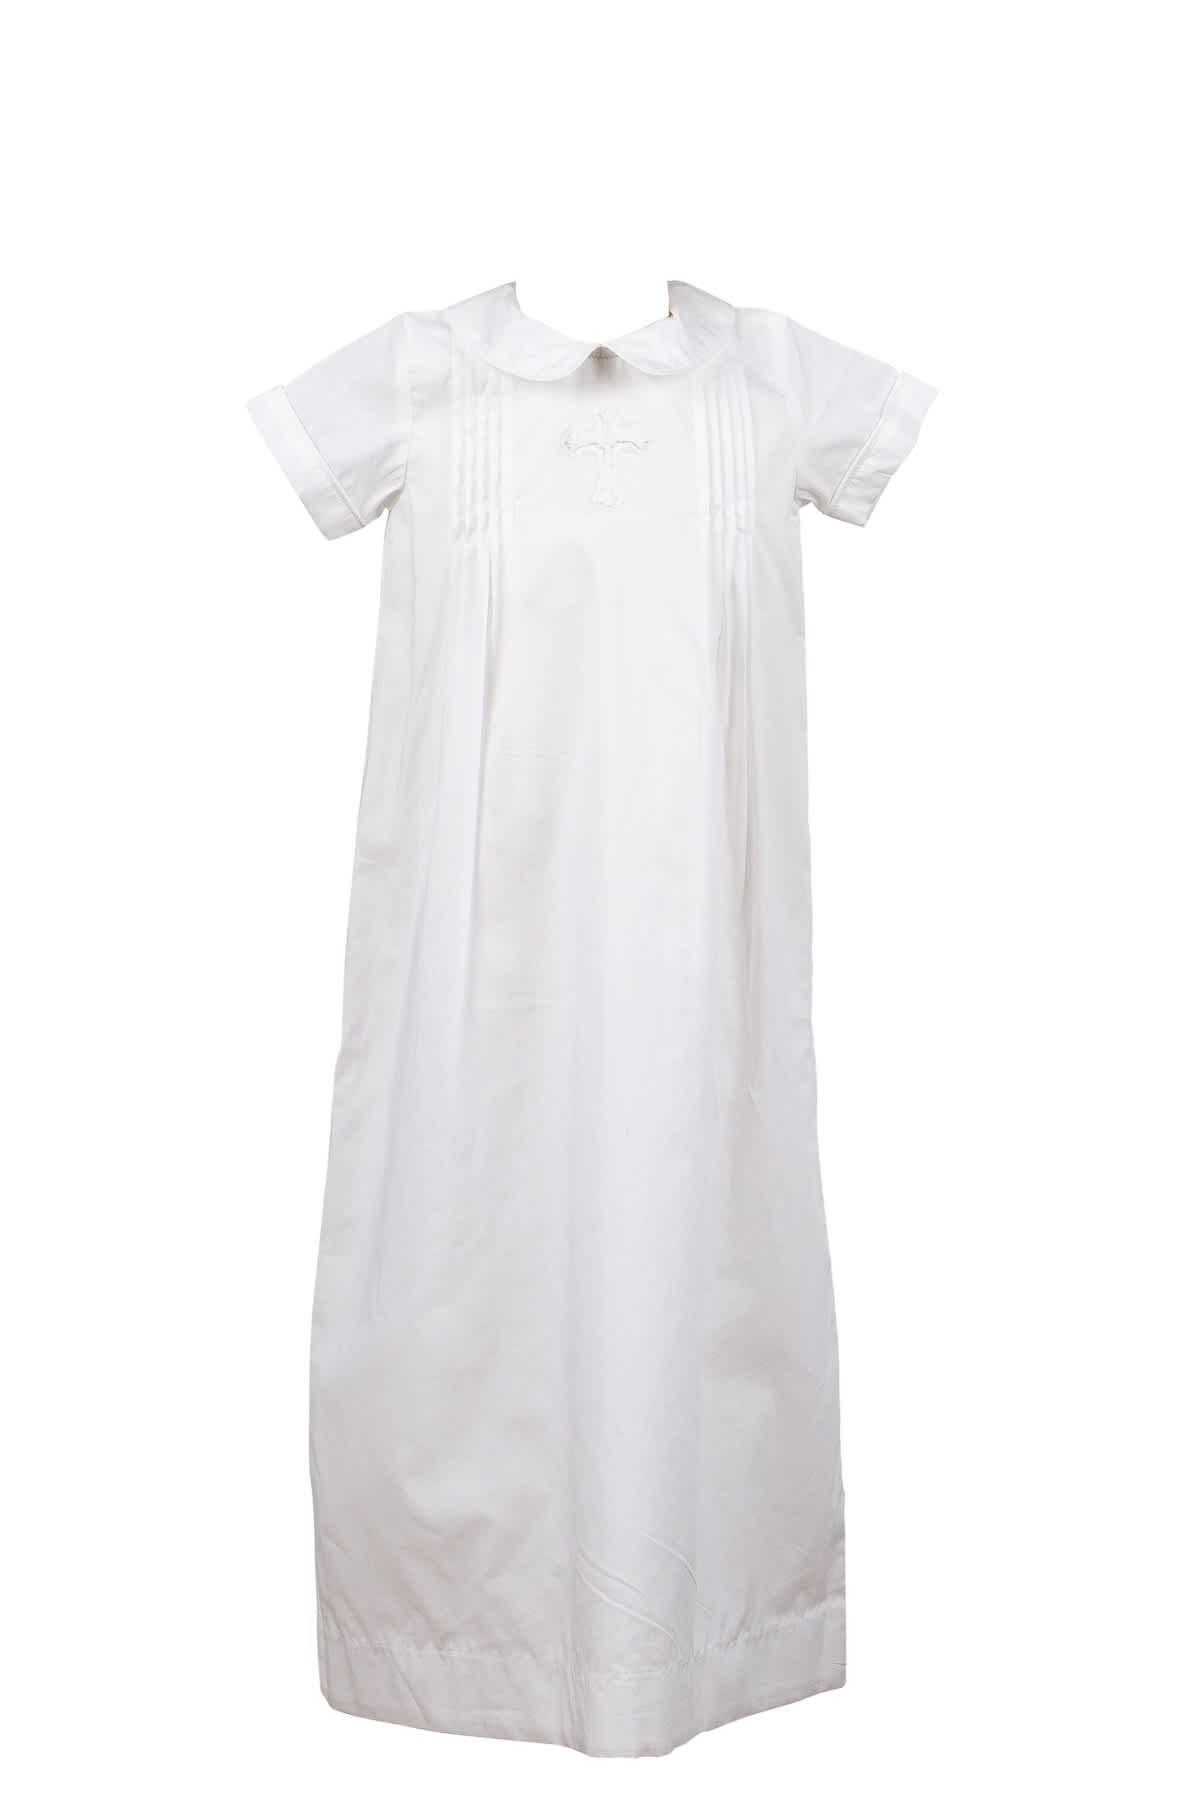 CROSS CHRISTENING GOWN